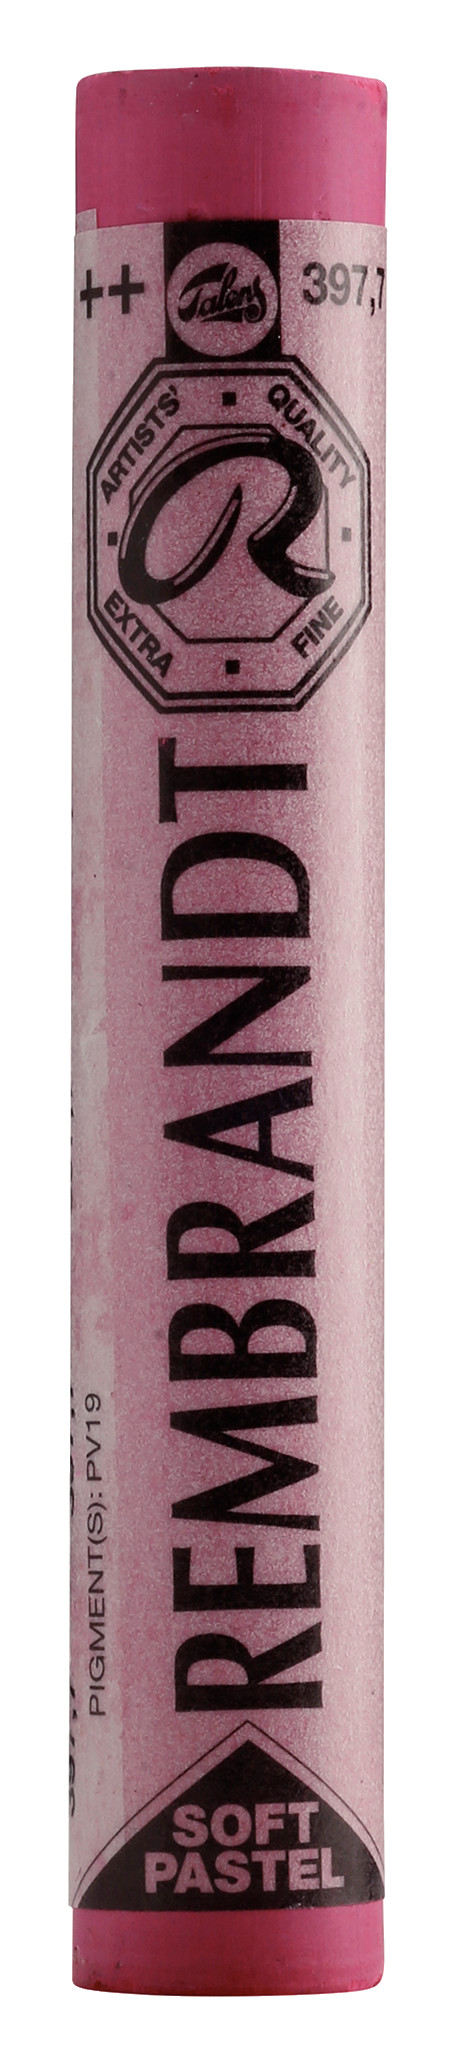 Rembrandt Soft Pastel Round Full Stick Permanent Rose(7) (397.7)